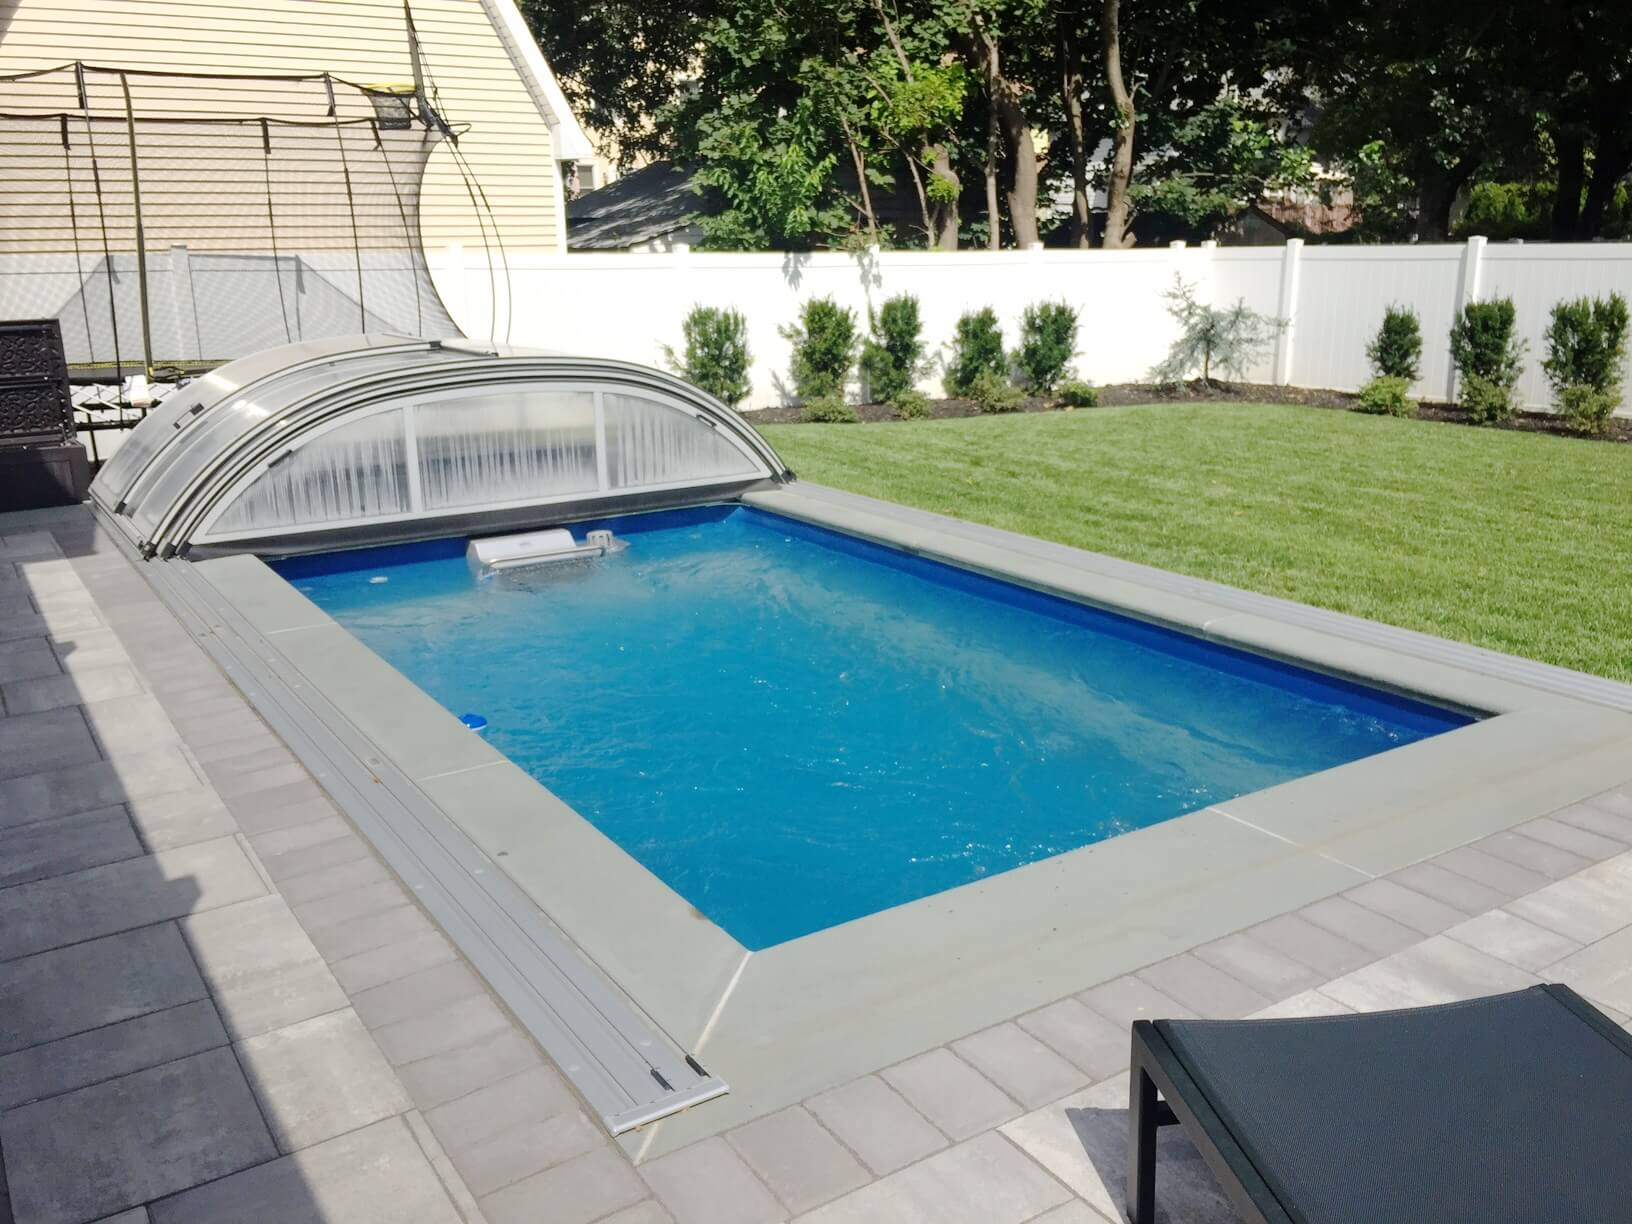 a fully in-ground Endless Pool enclosure, retracted